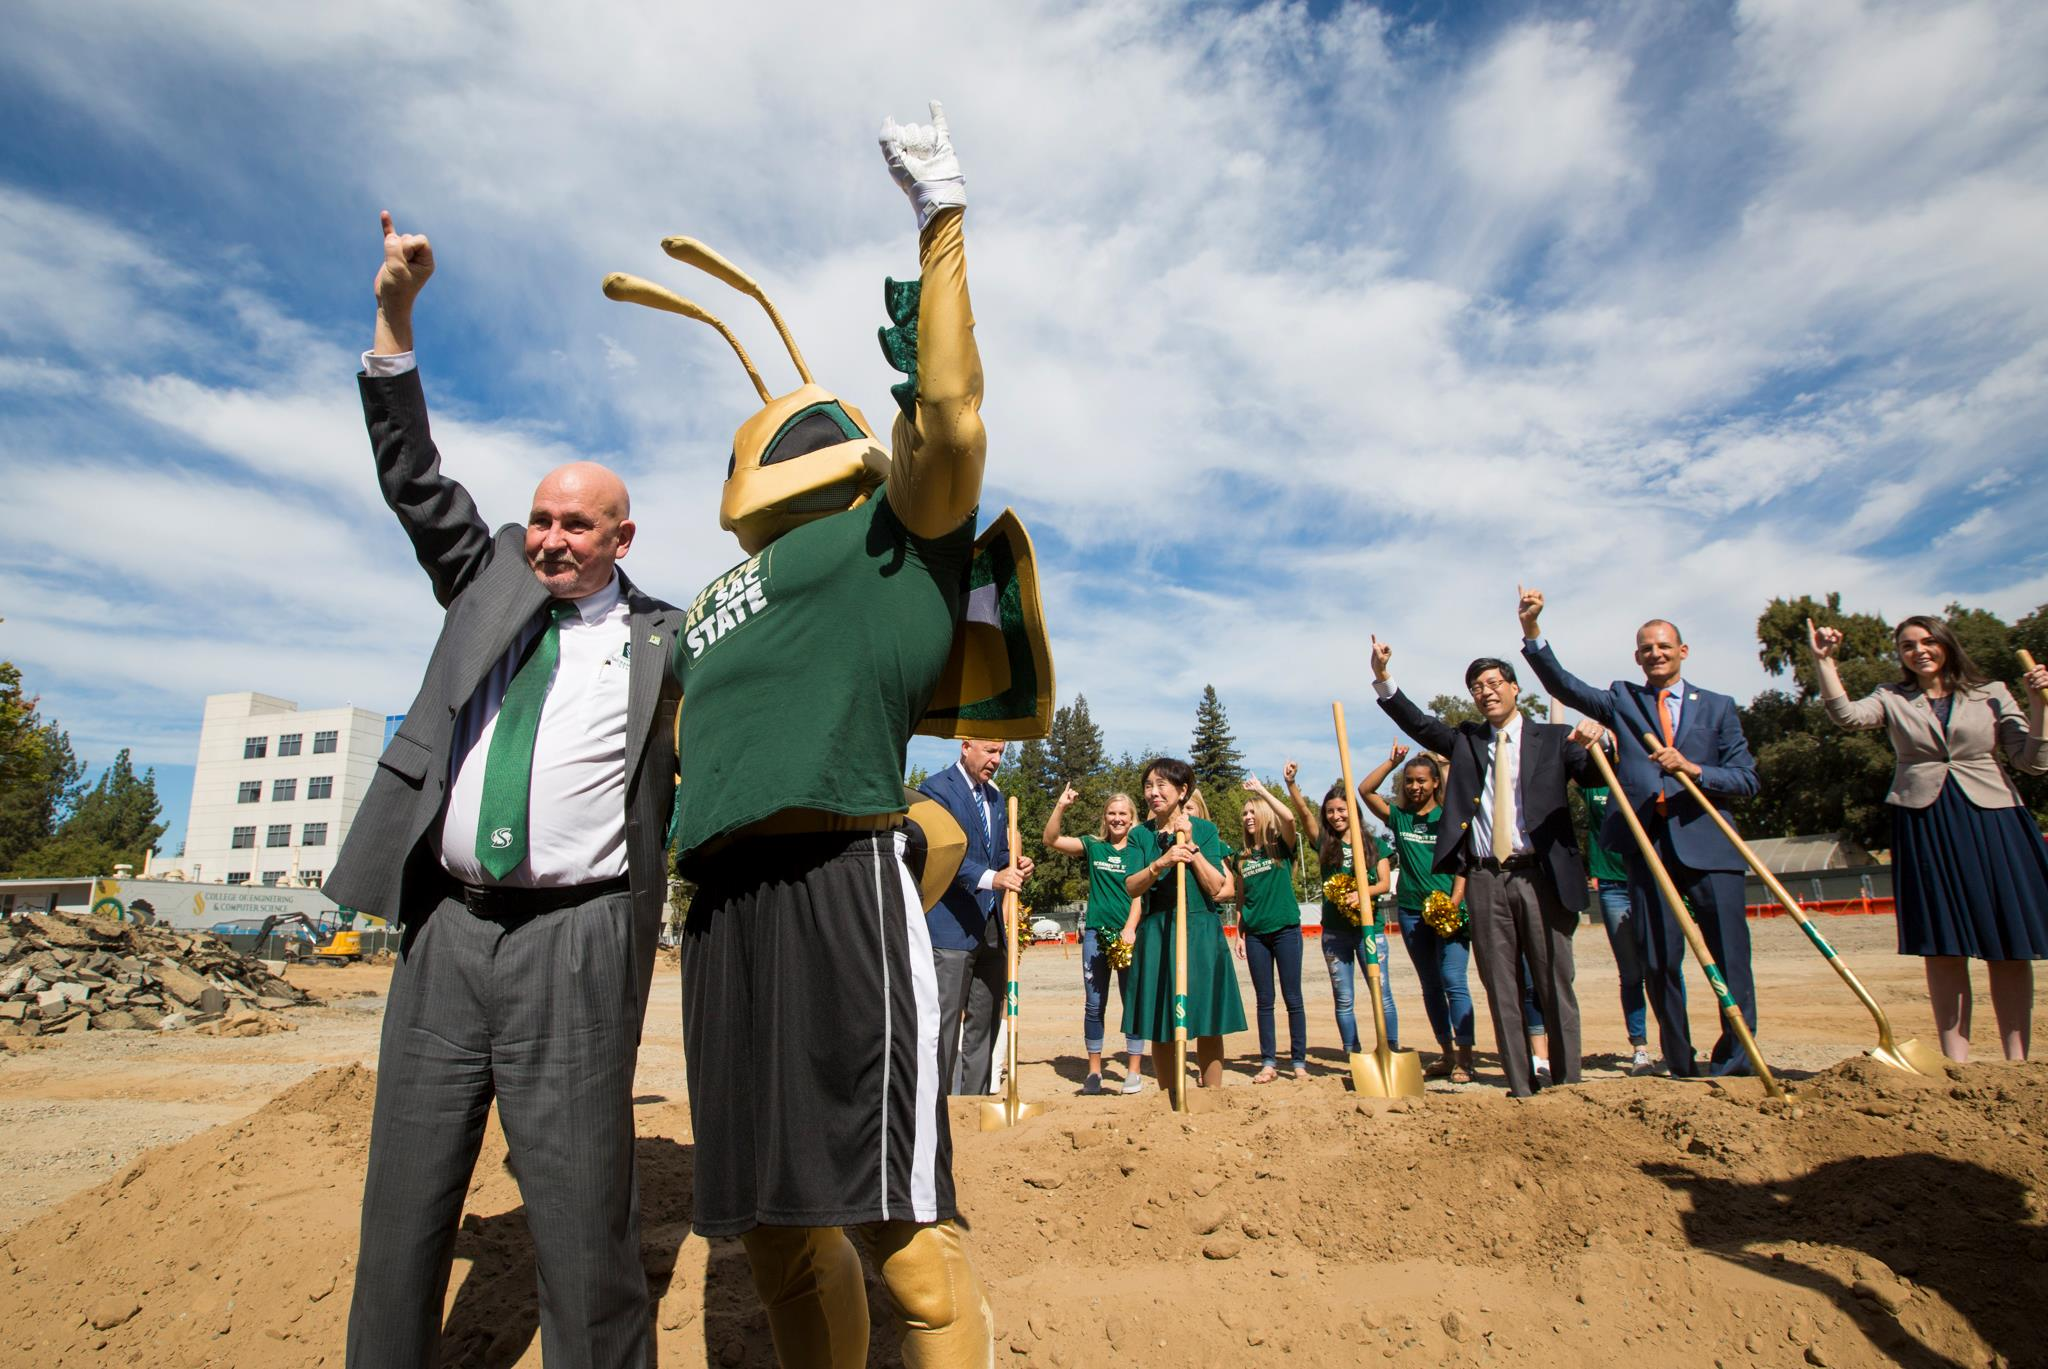 Groundbreaking with Herky